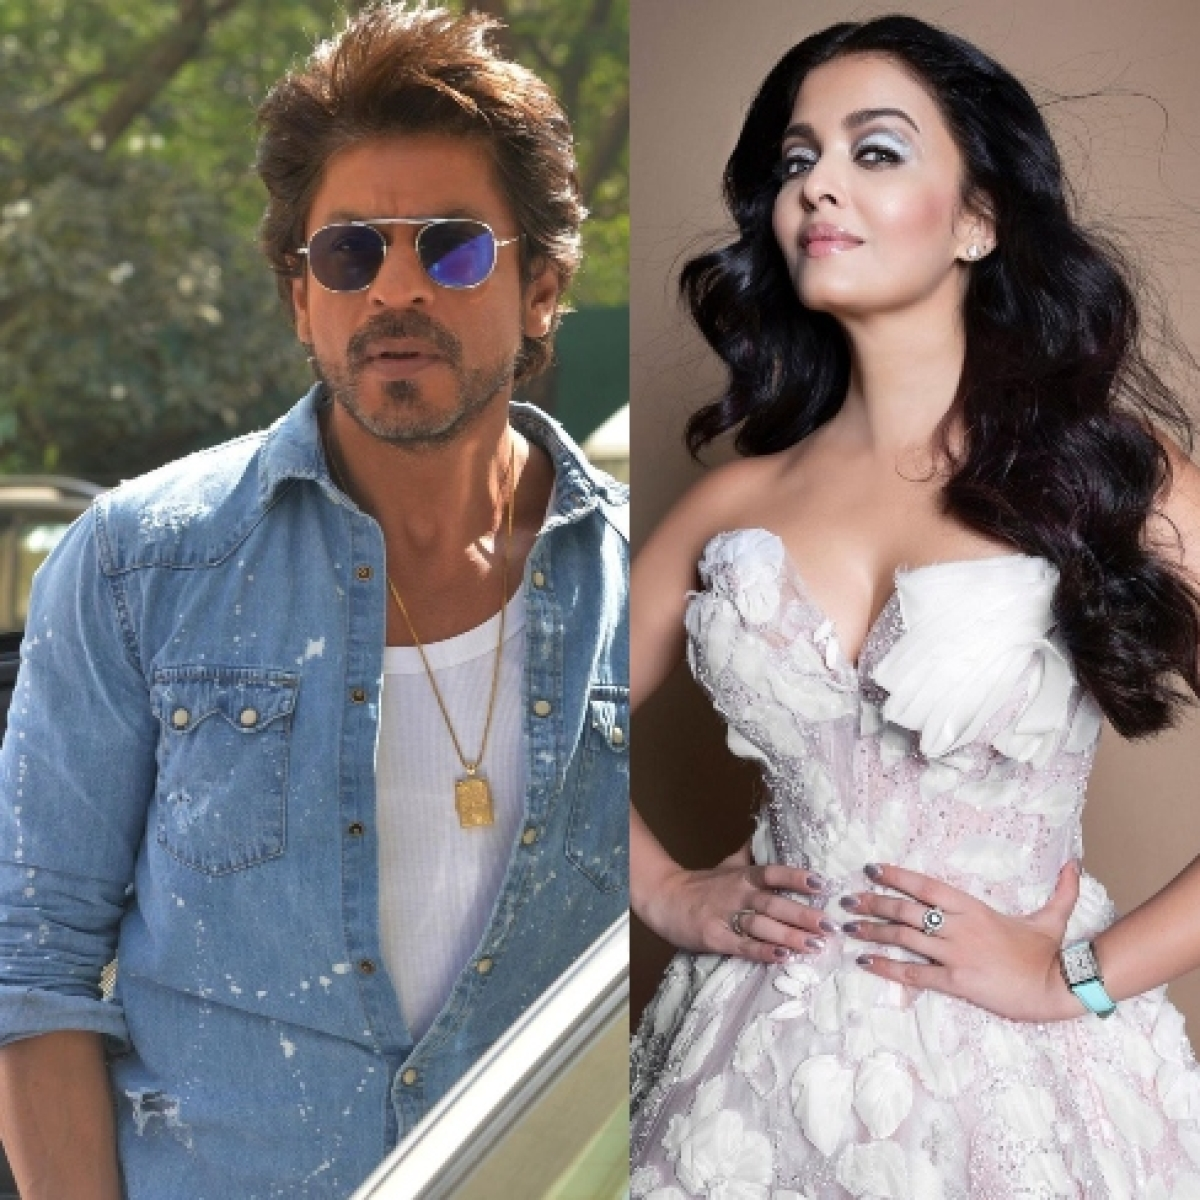 Shah Rukh Khan, Salman Khan, Aishwarya Rai and other Bollywood stars who own lavish homes in Dubai